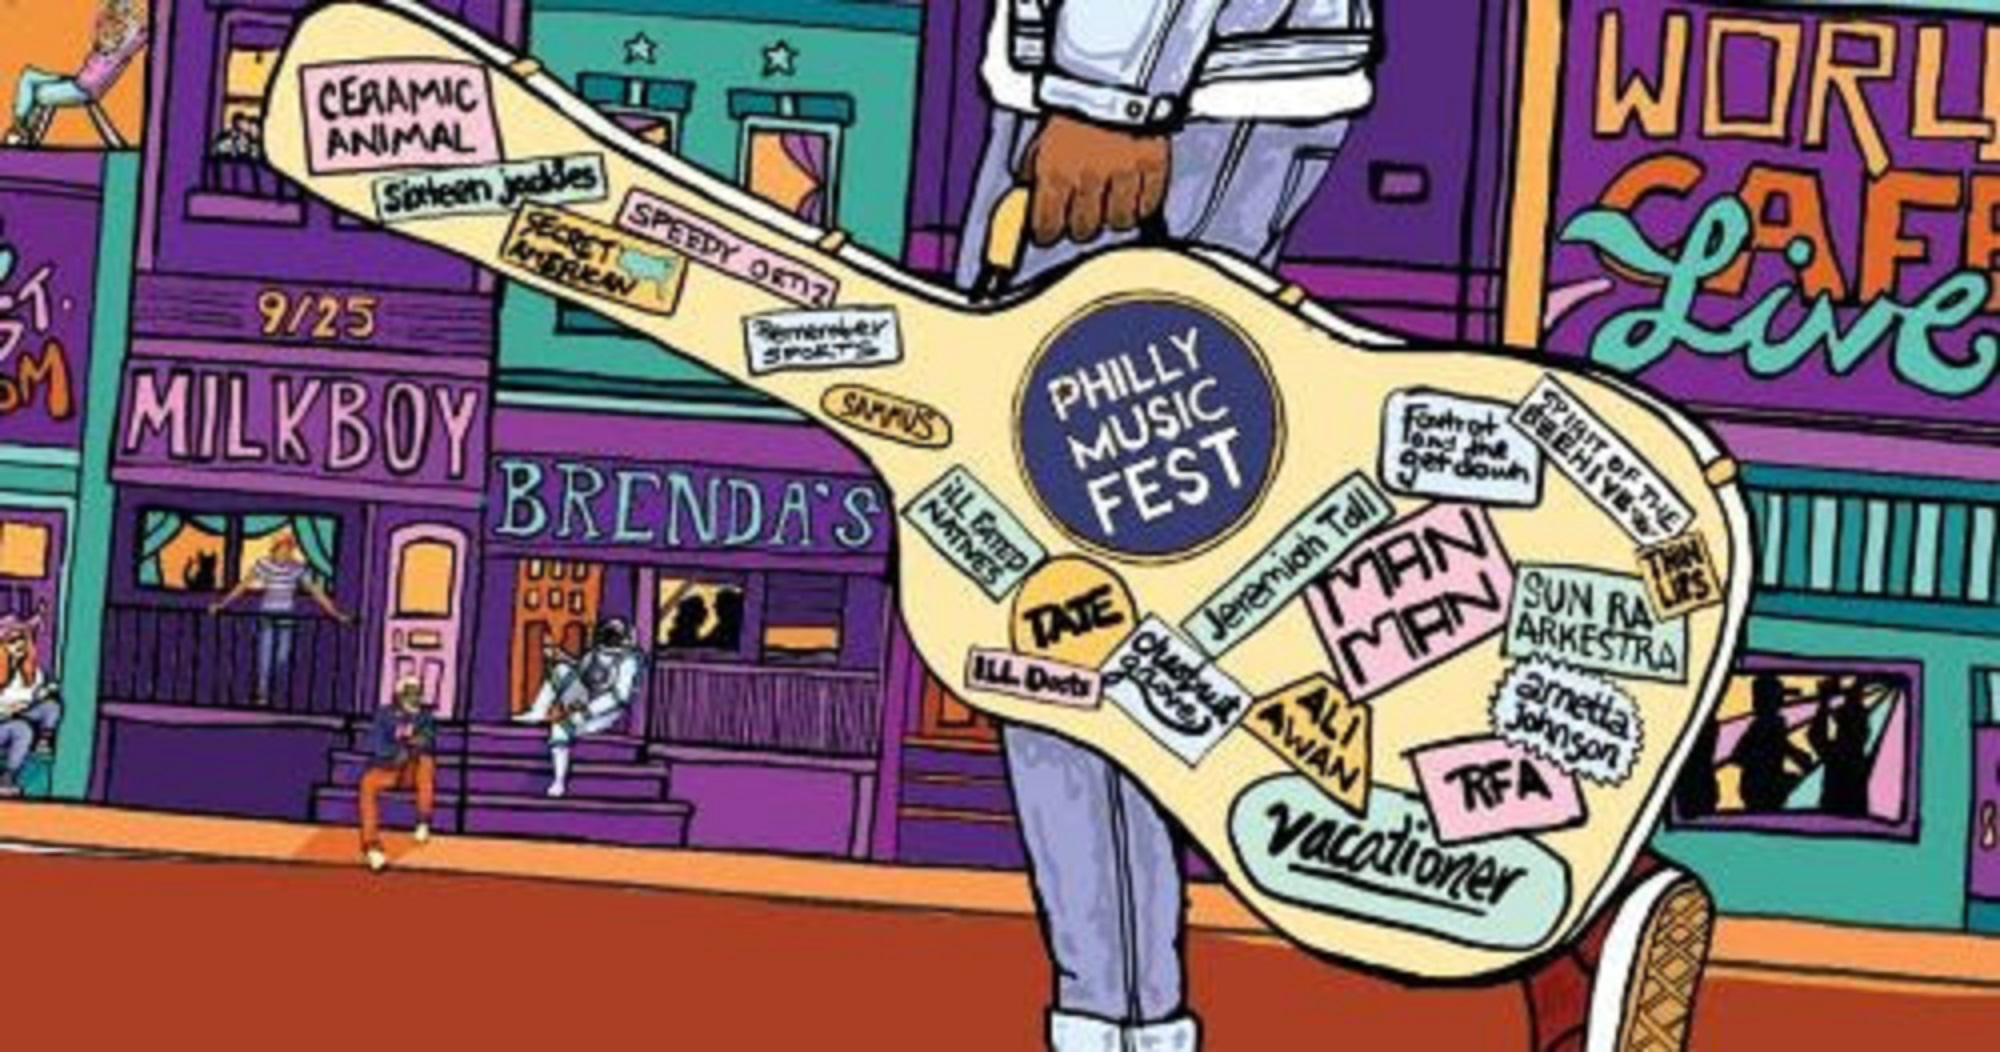 PHILLY MUSIC FEST ANNOUNCES 2019 LINEUP